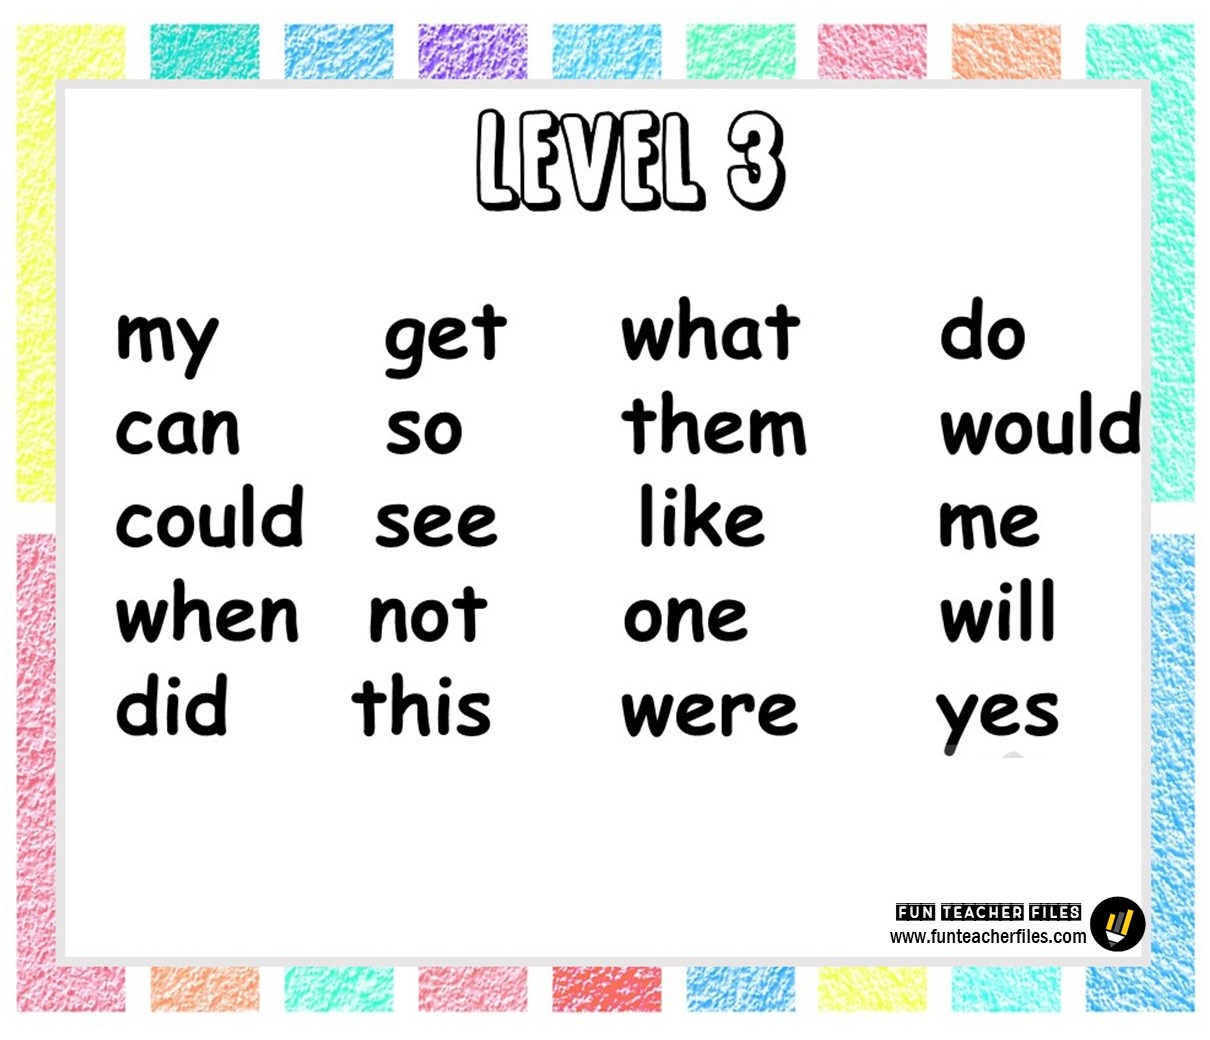 Basic Sight Words In Different Levels